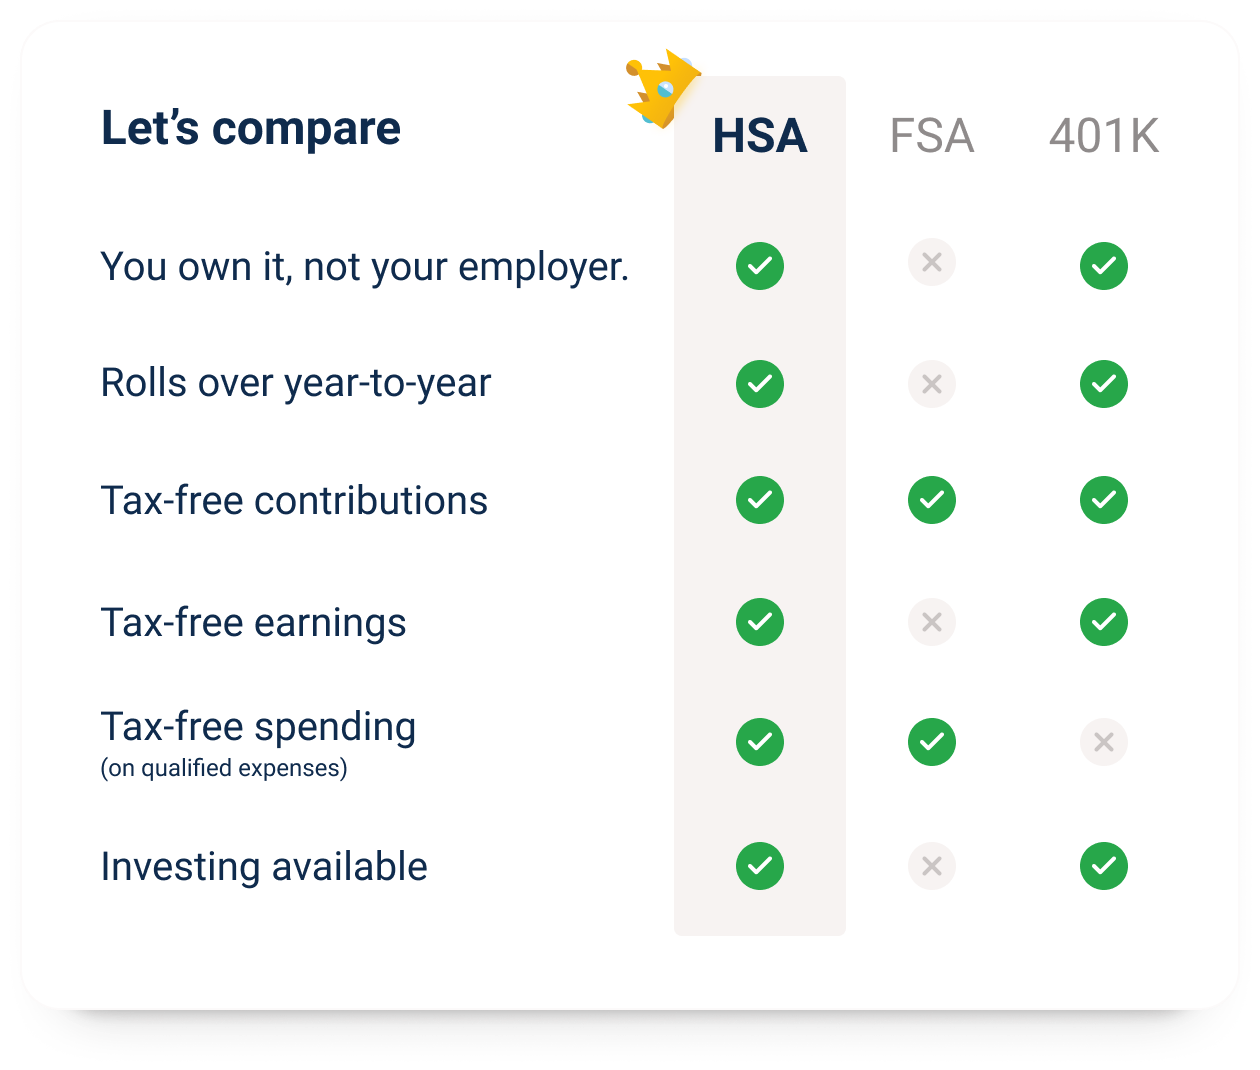 tax advantages comparisons between hsa, fsa, and 401k